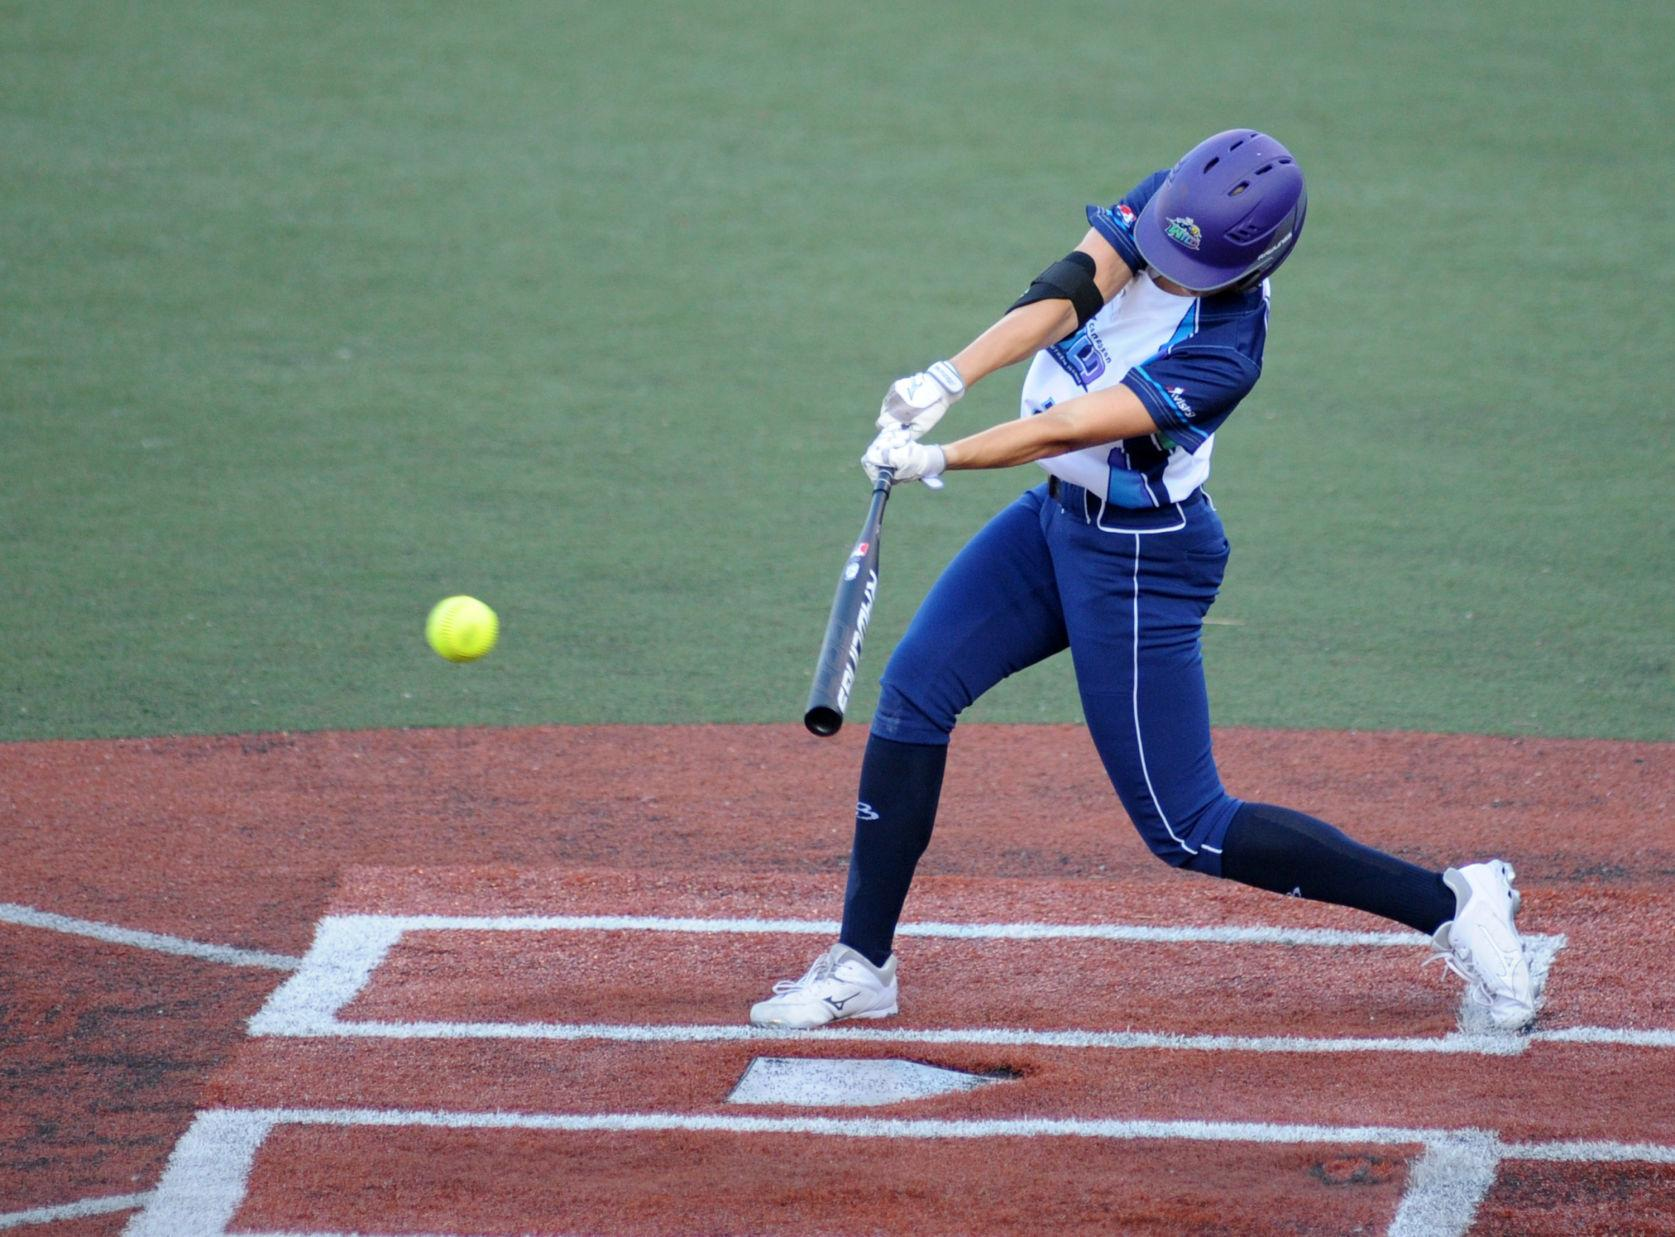 NPF Softball | Canadian Wild to play Cleveland at Charlotte